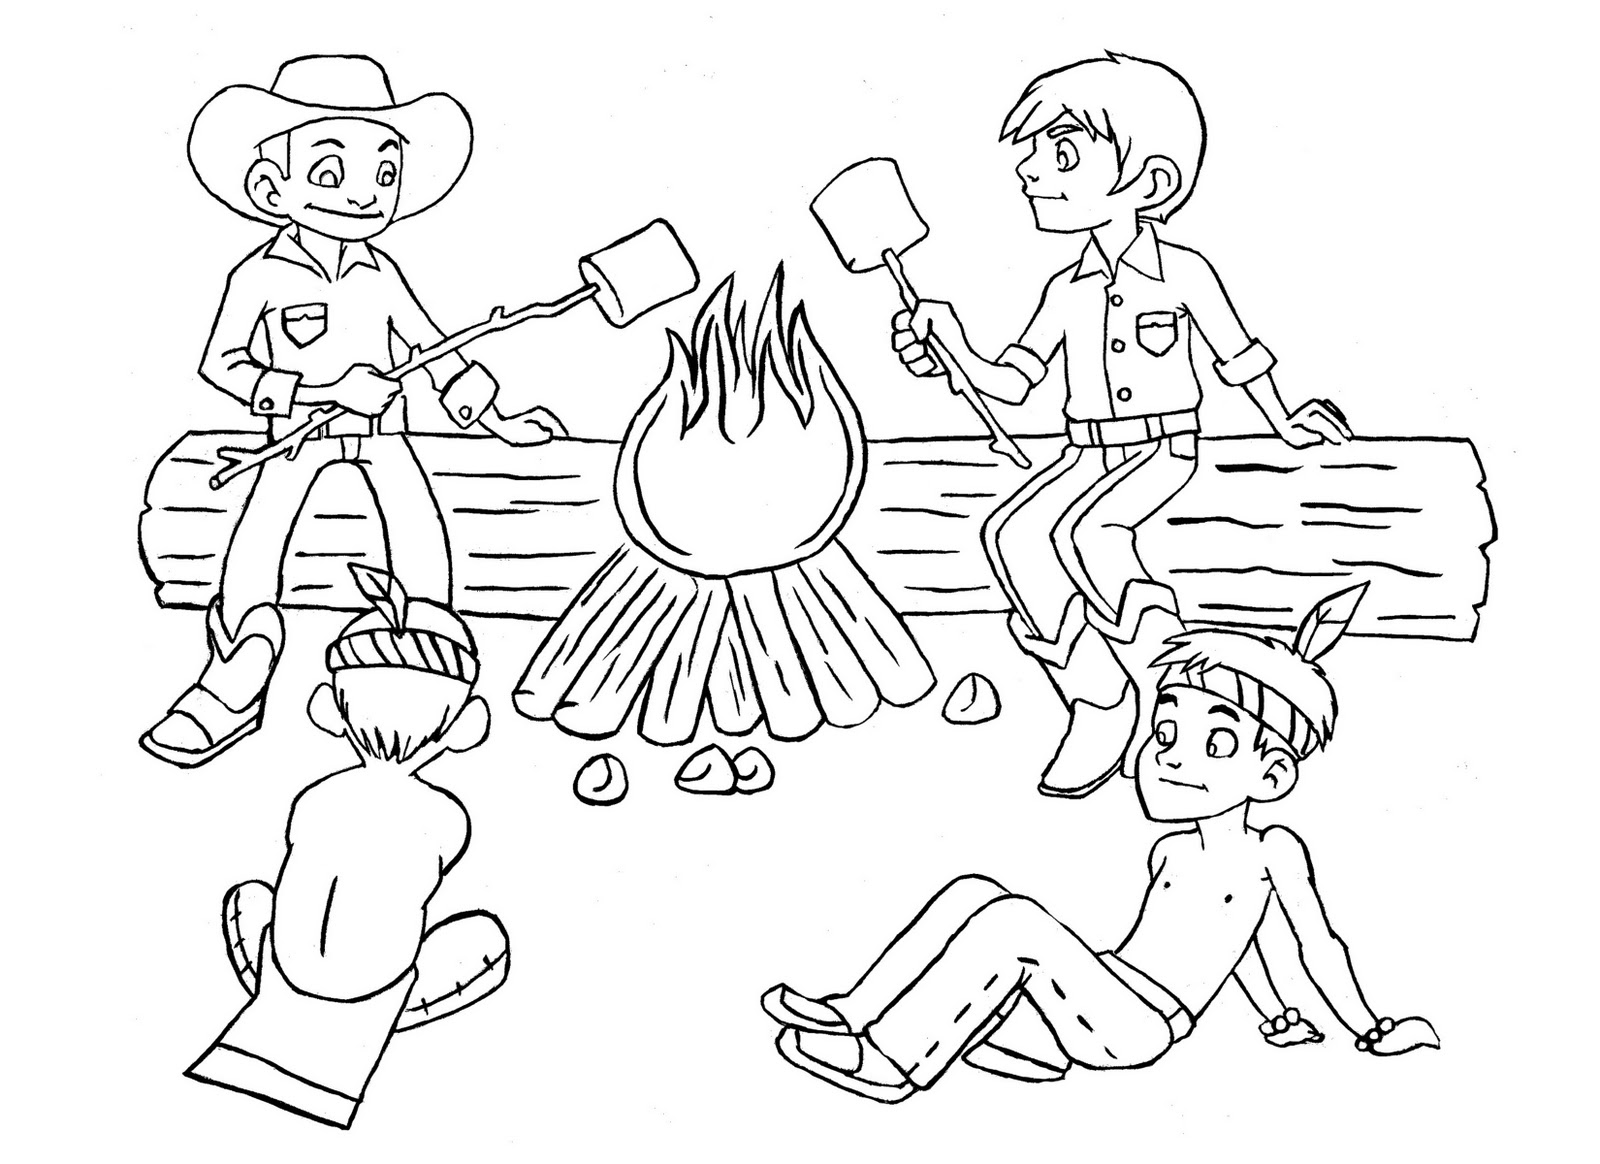 Cowboy And Indians Campfire For Client By Hans Guignard